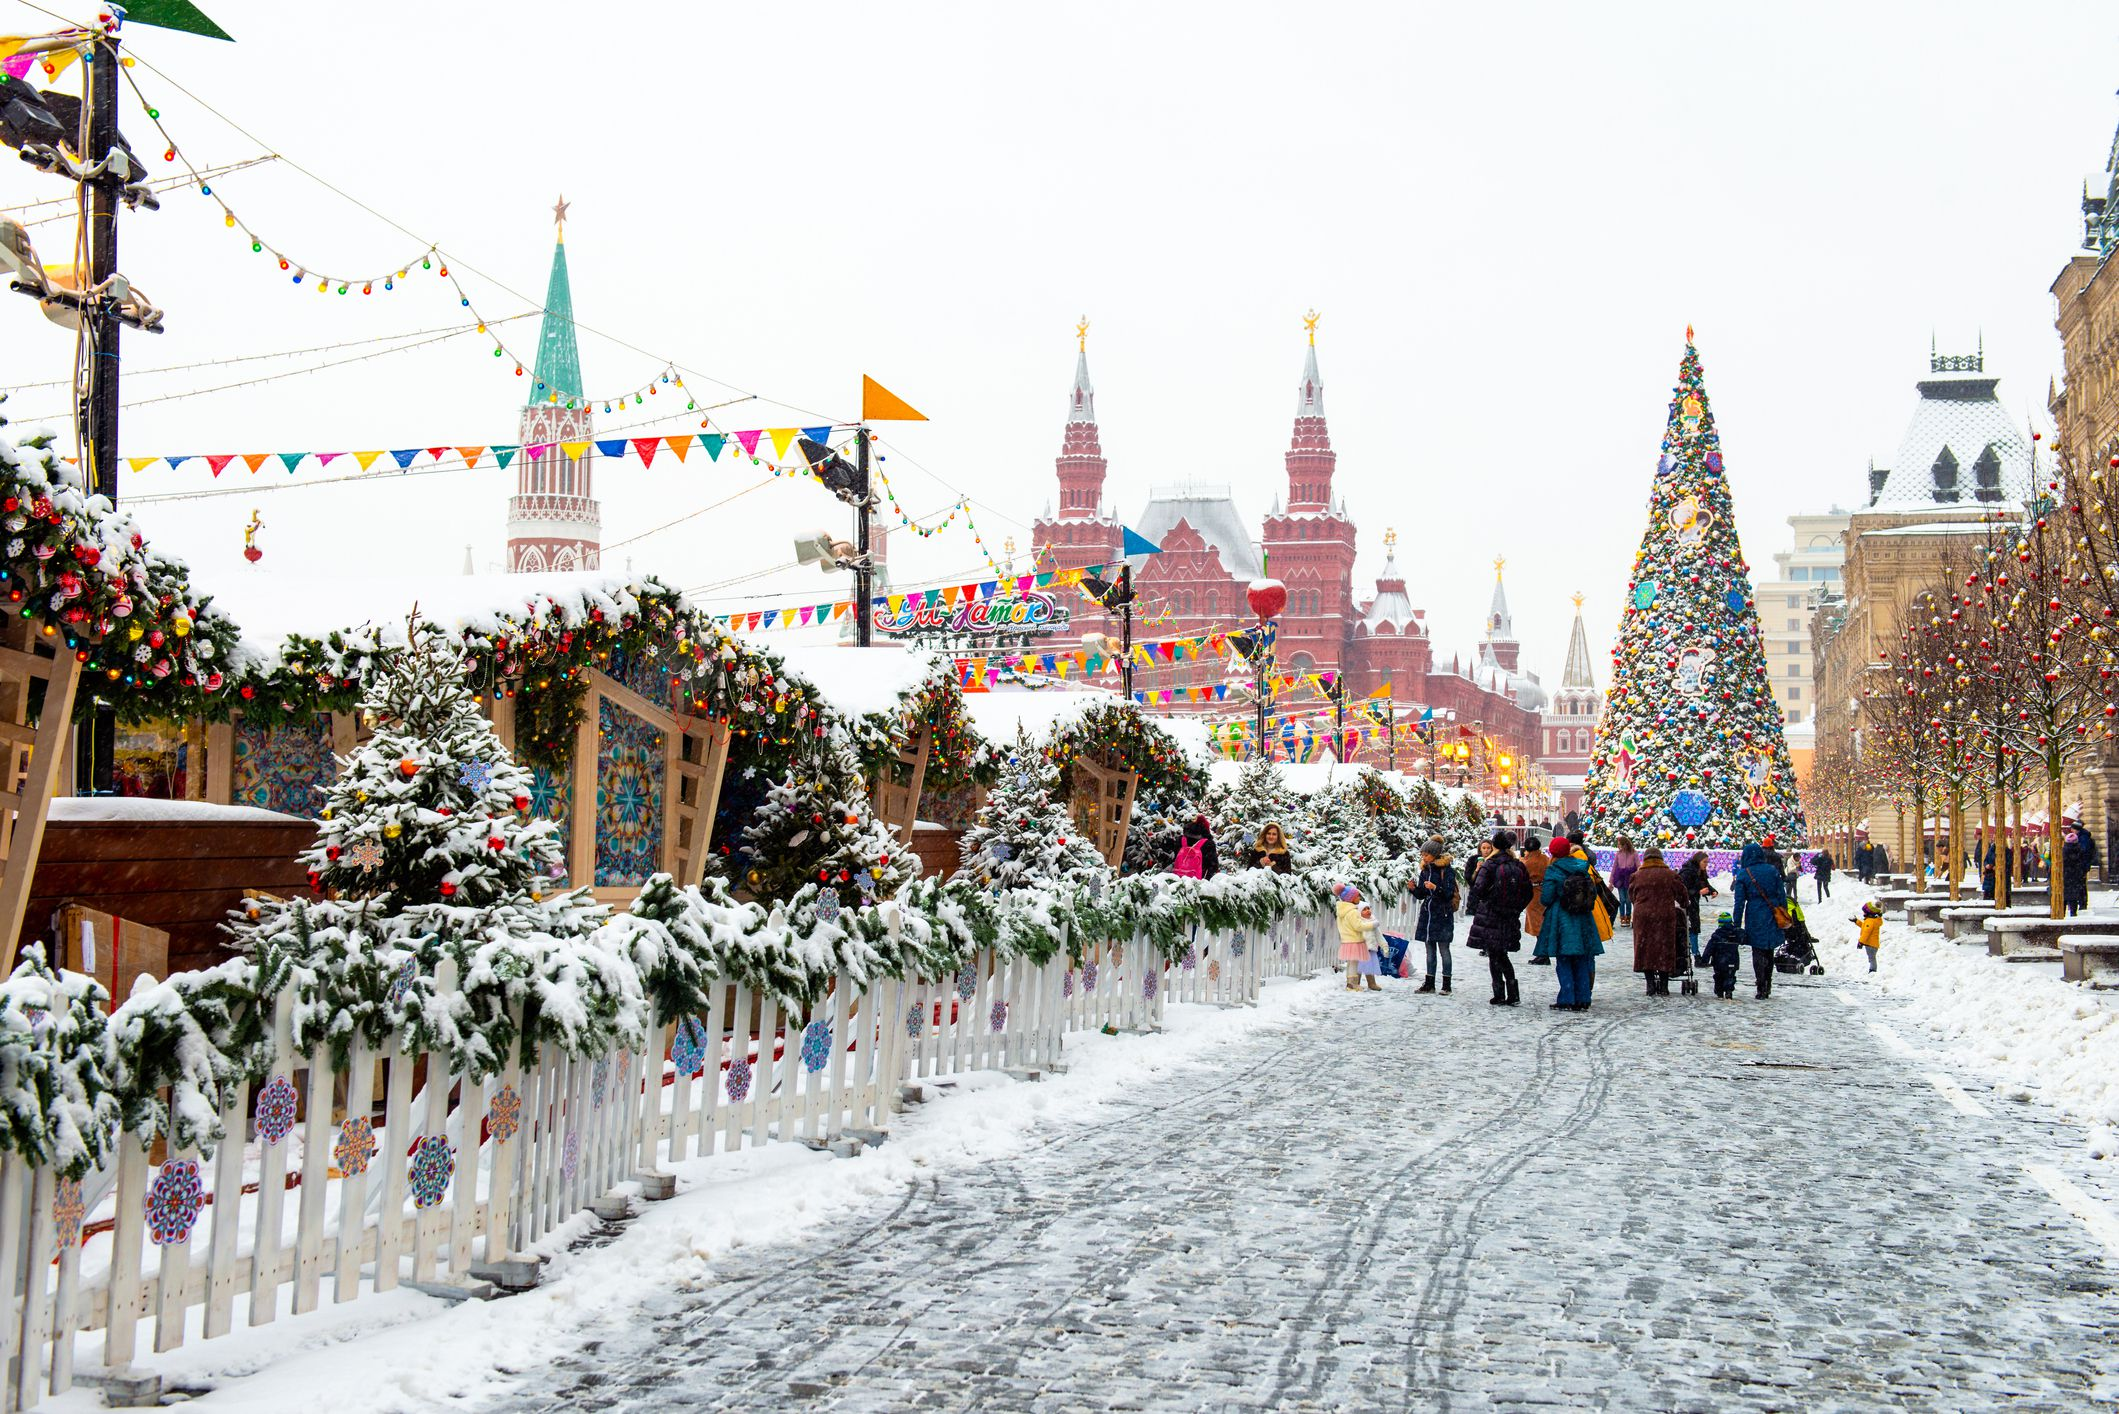 Snowy Red Square in Moscow. People preparing for Christmas and New year. Winter walk on the street.